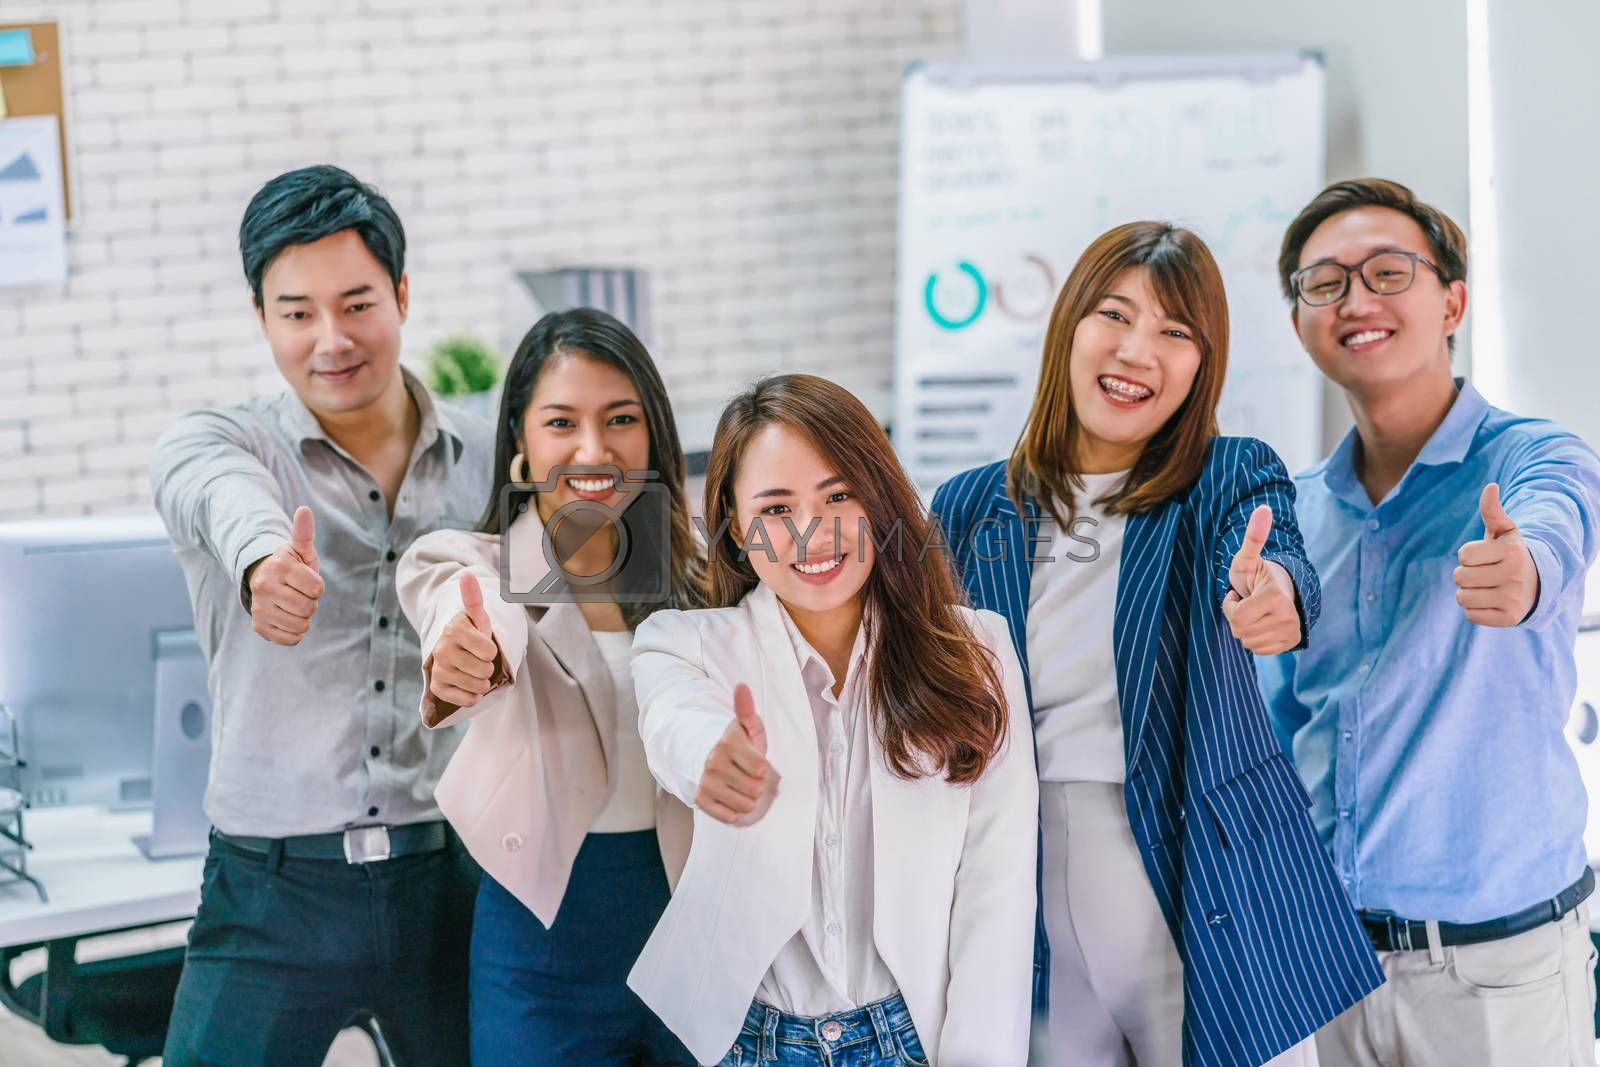 Group of Asian Business people showing thumbs up and looking at camera together at modern workplace, Team work and team building, small business owner and partnership, approve and agree concept